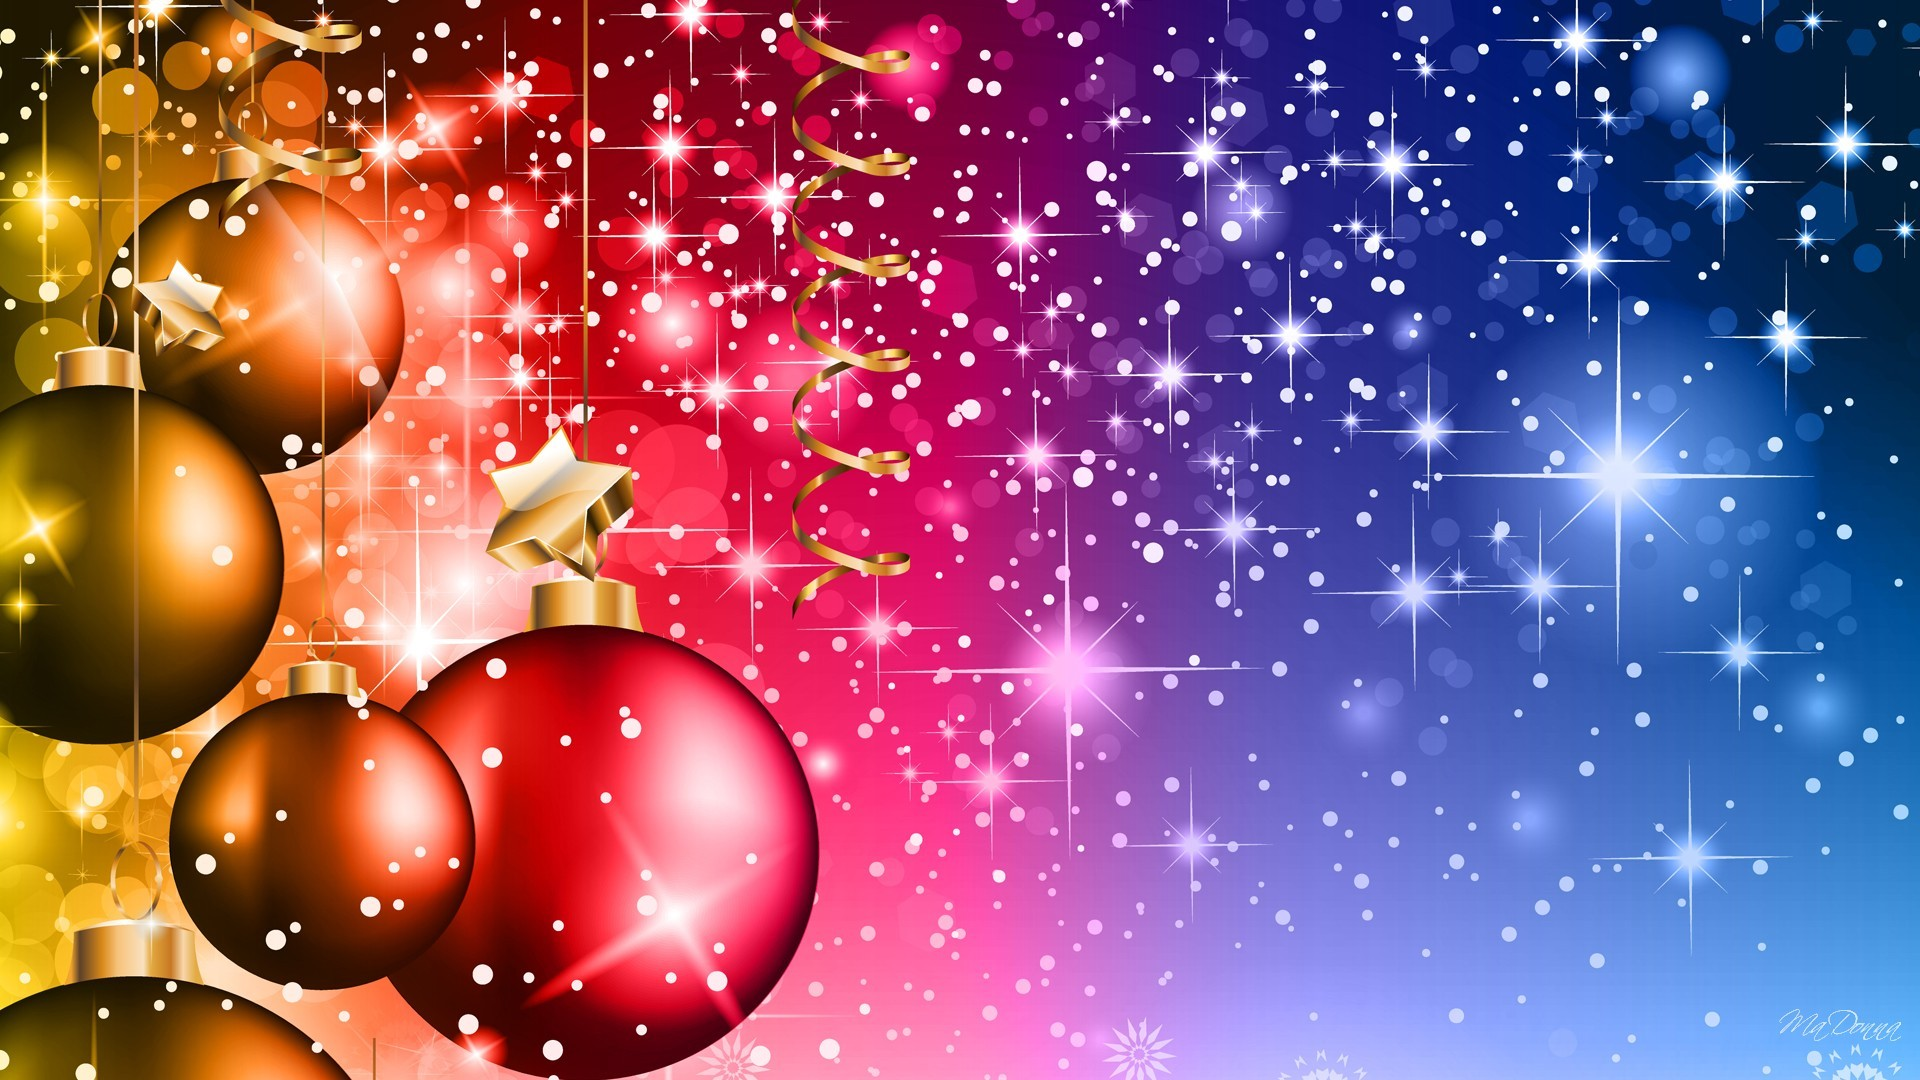 Hd Christmas Wallpaper.Christmas Wallpapers 2017 Best Wallpapers